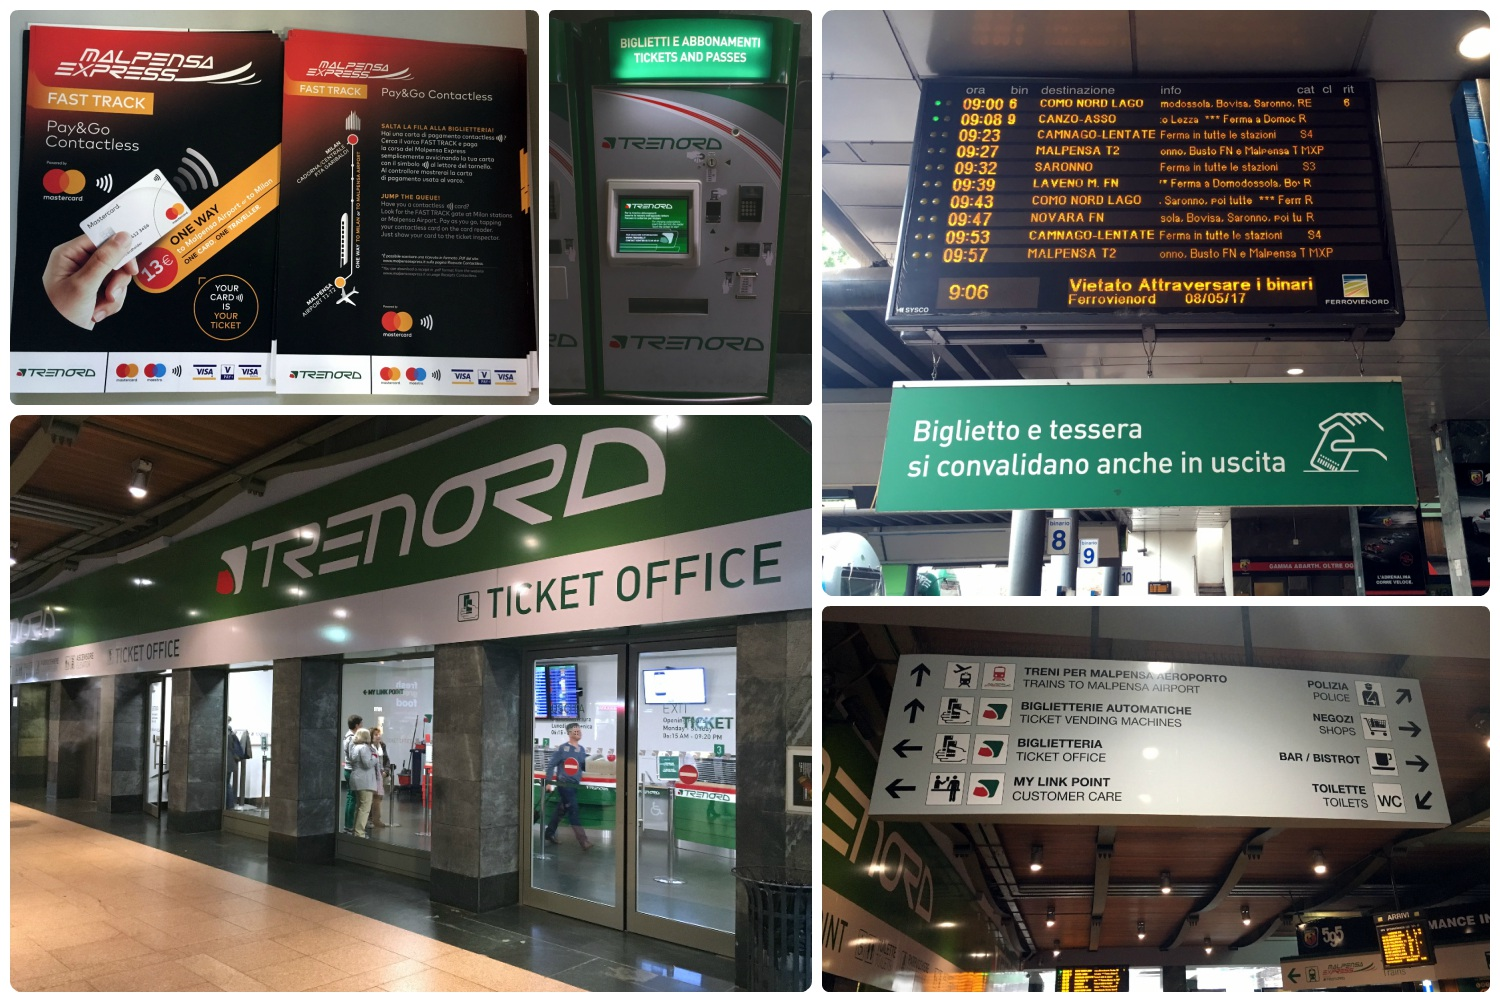 All images are of the station for the Malpensa Express train. Clockwise (from the top): The information flyer for the Malpensa Express, the ticket machine to purchase tickets to the airport, the digital signboard with train and platform information, the signboard as seen when entering the station, the front of the ticket office where you can purchase tickets directly from an agent.